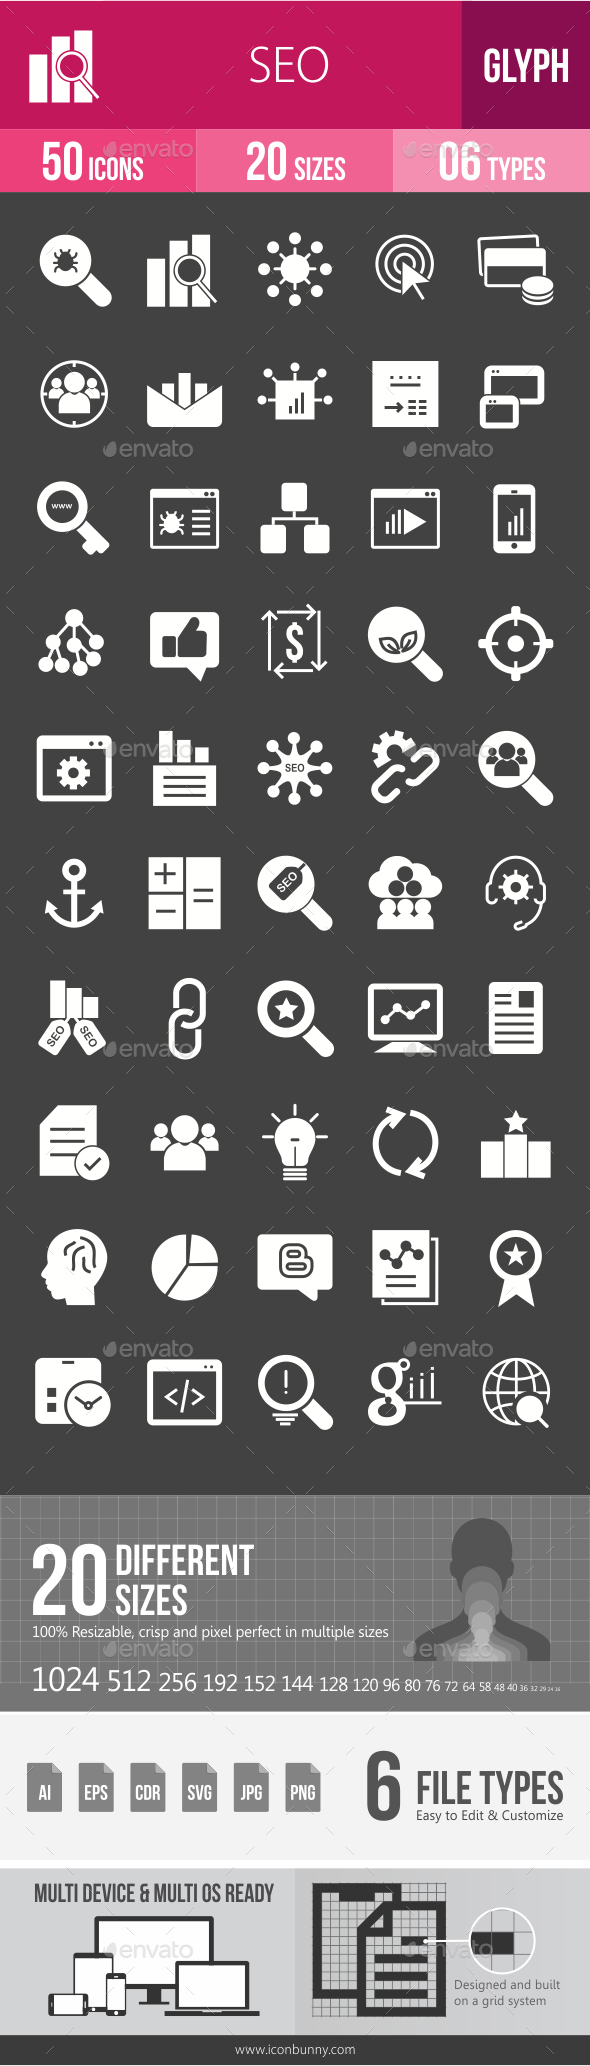 SEO Glyph Inverted Icons - Icons